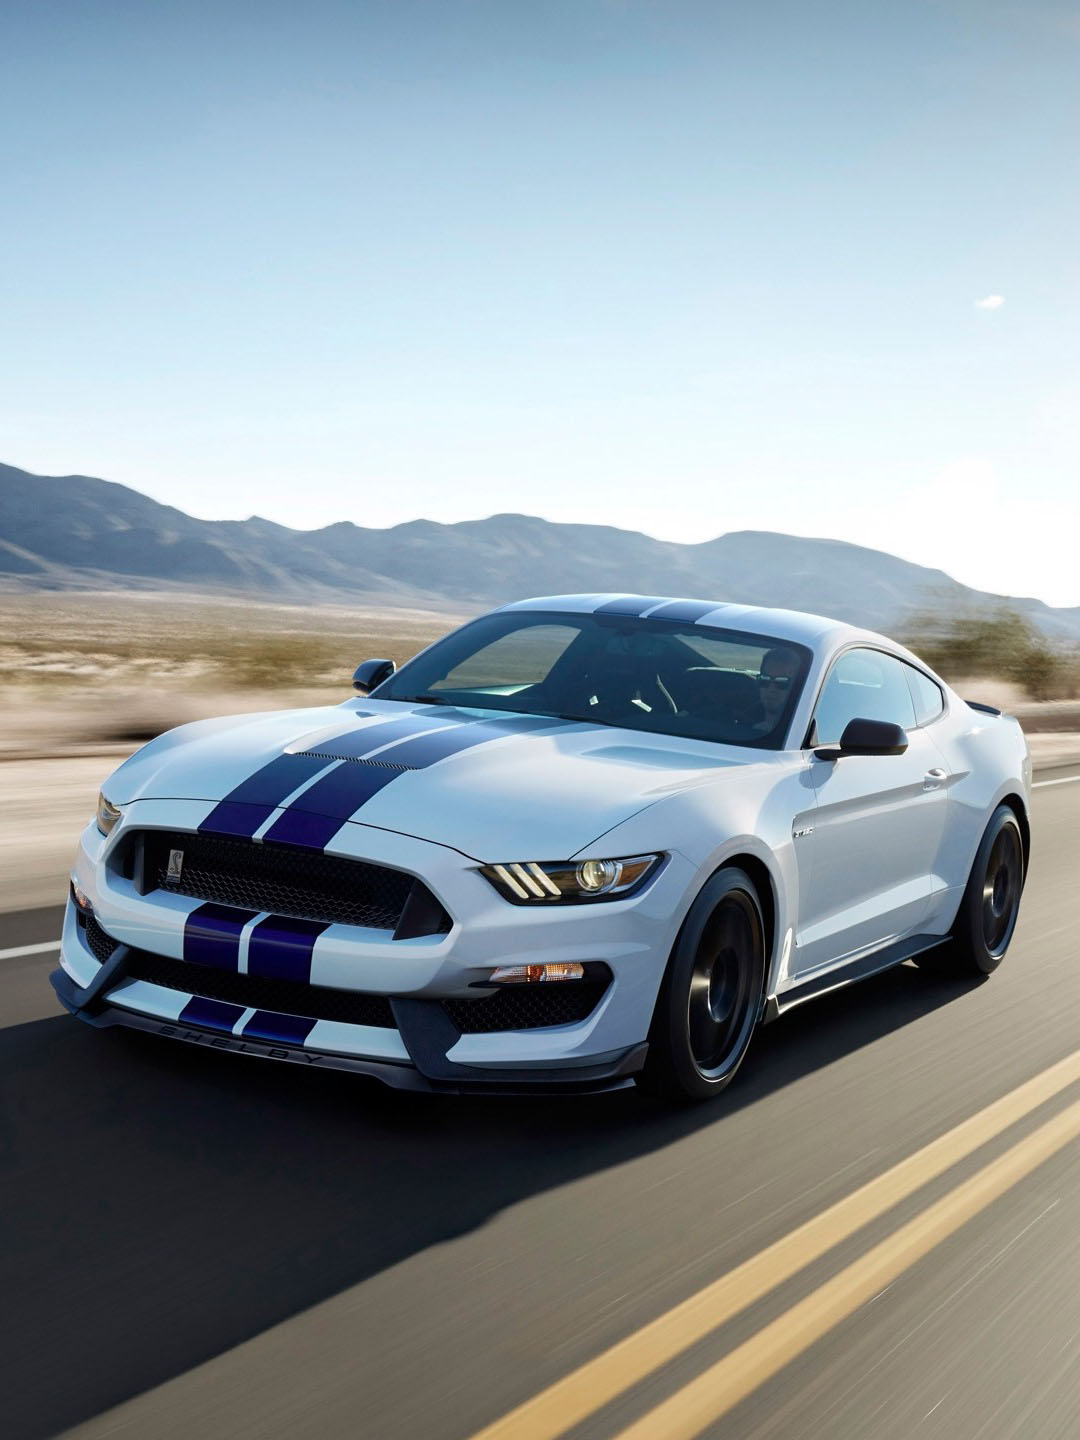 Ford Shelby на дороге